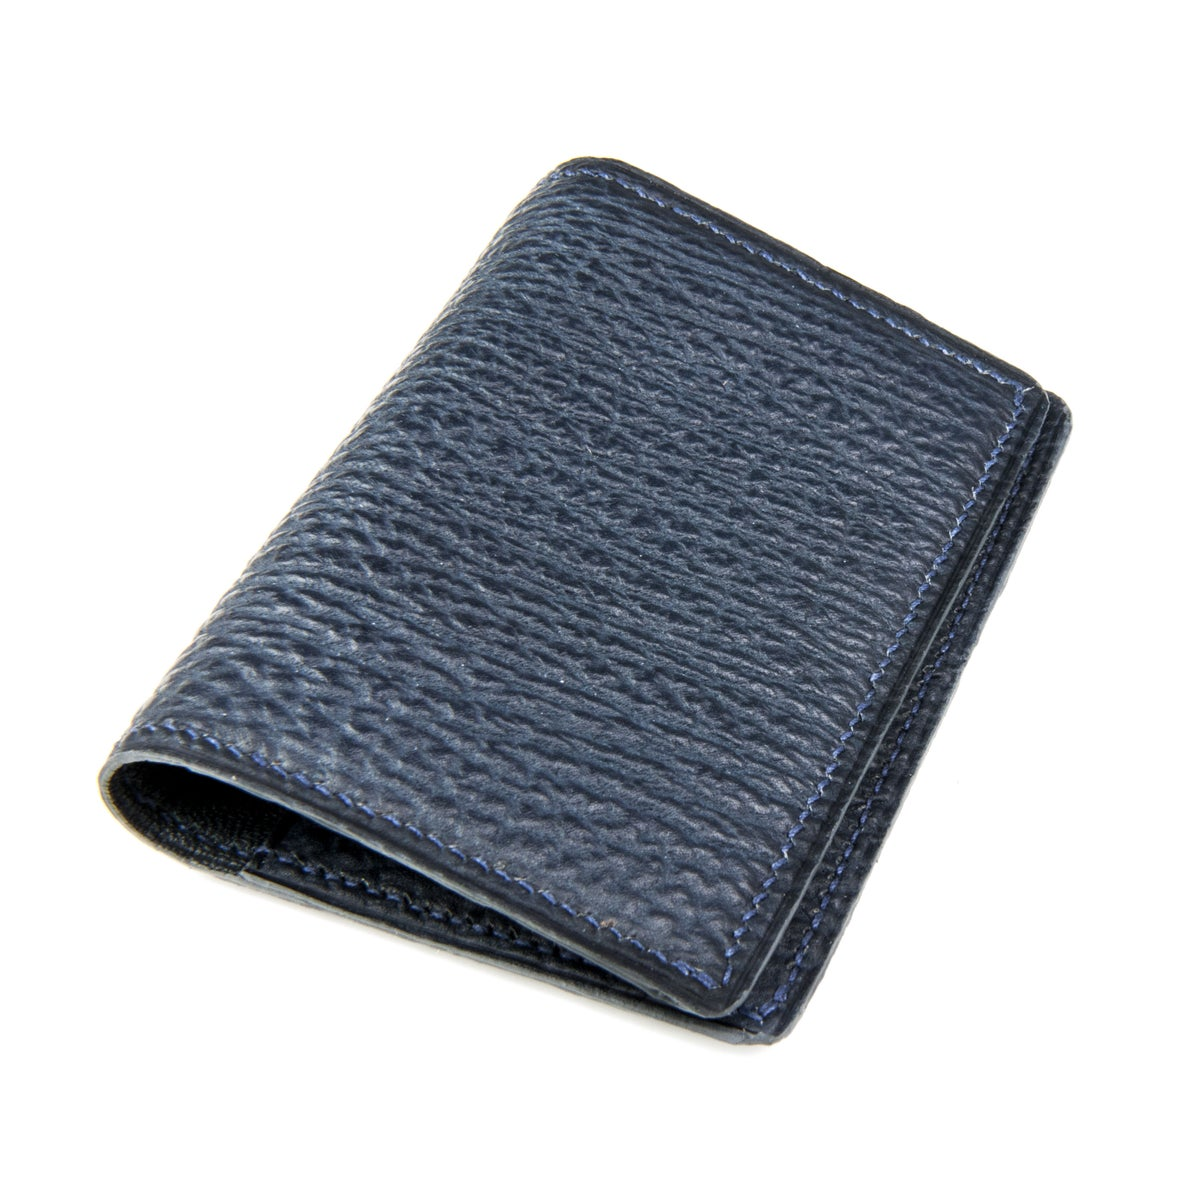 Image of Bifold n°2 - Blue shark card-holder